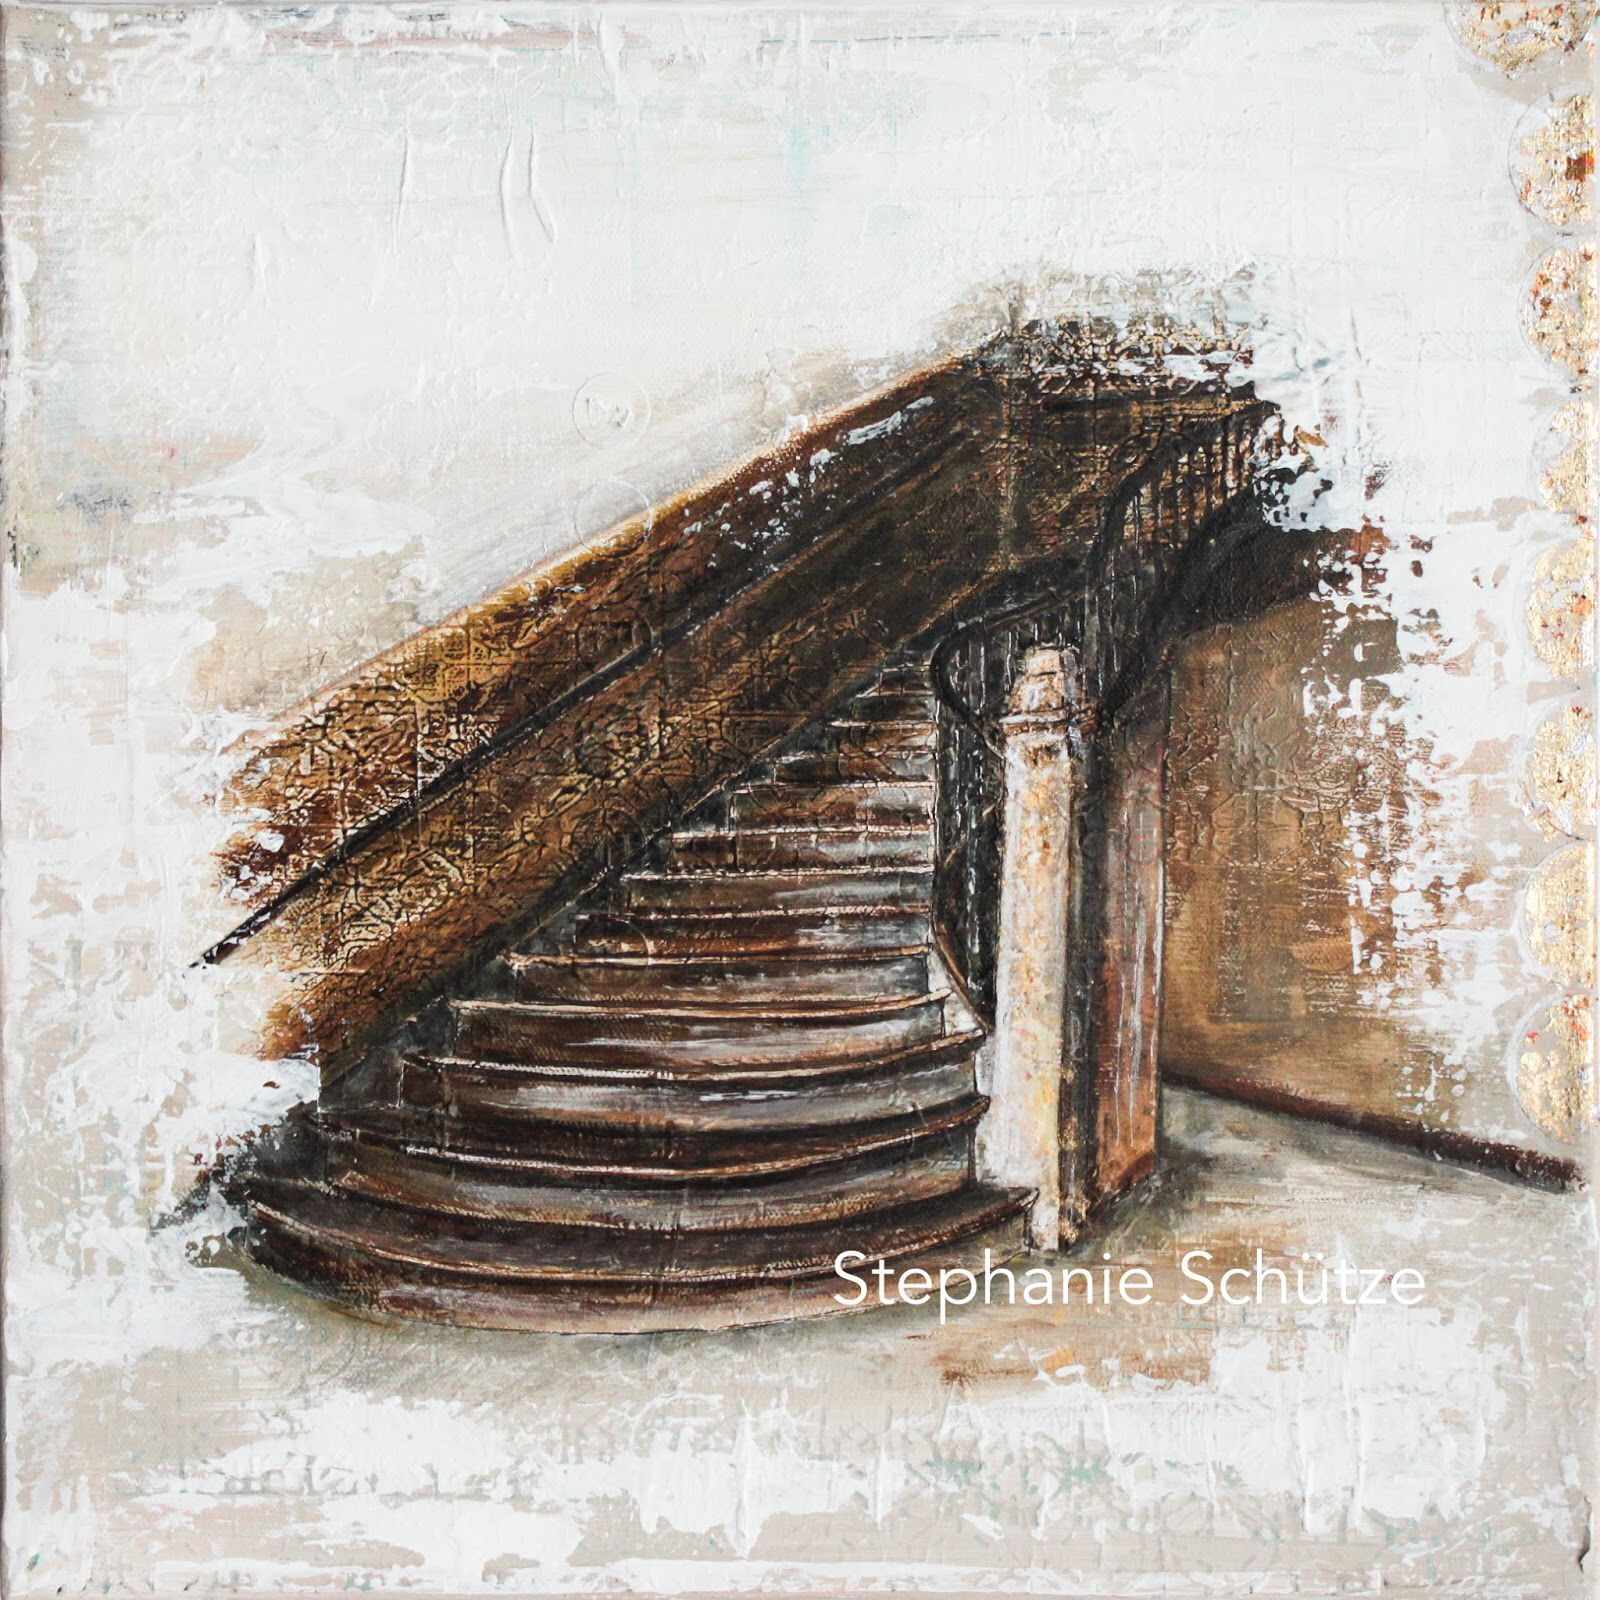 This is a painting I made month ago. It's made from a photo as base of a stairway in an abandoned villa. I'm fascinated by abandoned old houses and I think this painting will not be the last. On this canvas are felt 100 layer until I came to this conclusion. Sometimes you just have to be patient. http://scrapmanufaktur.blogspot.de/2016/07/fairytale-stairway-marchenhafte-treppe.html?m=1